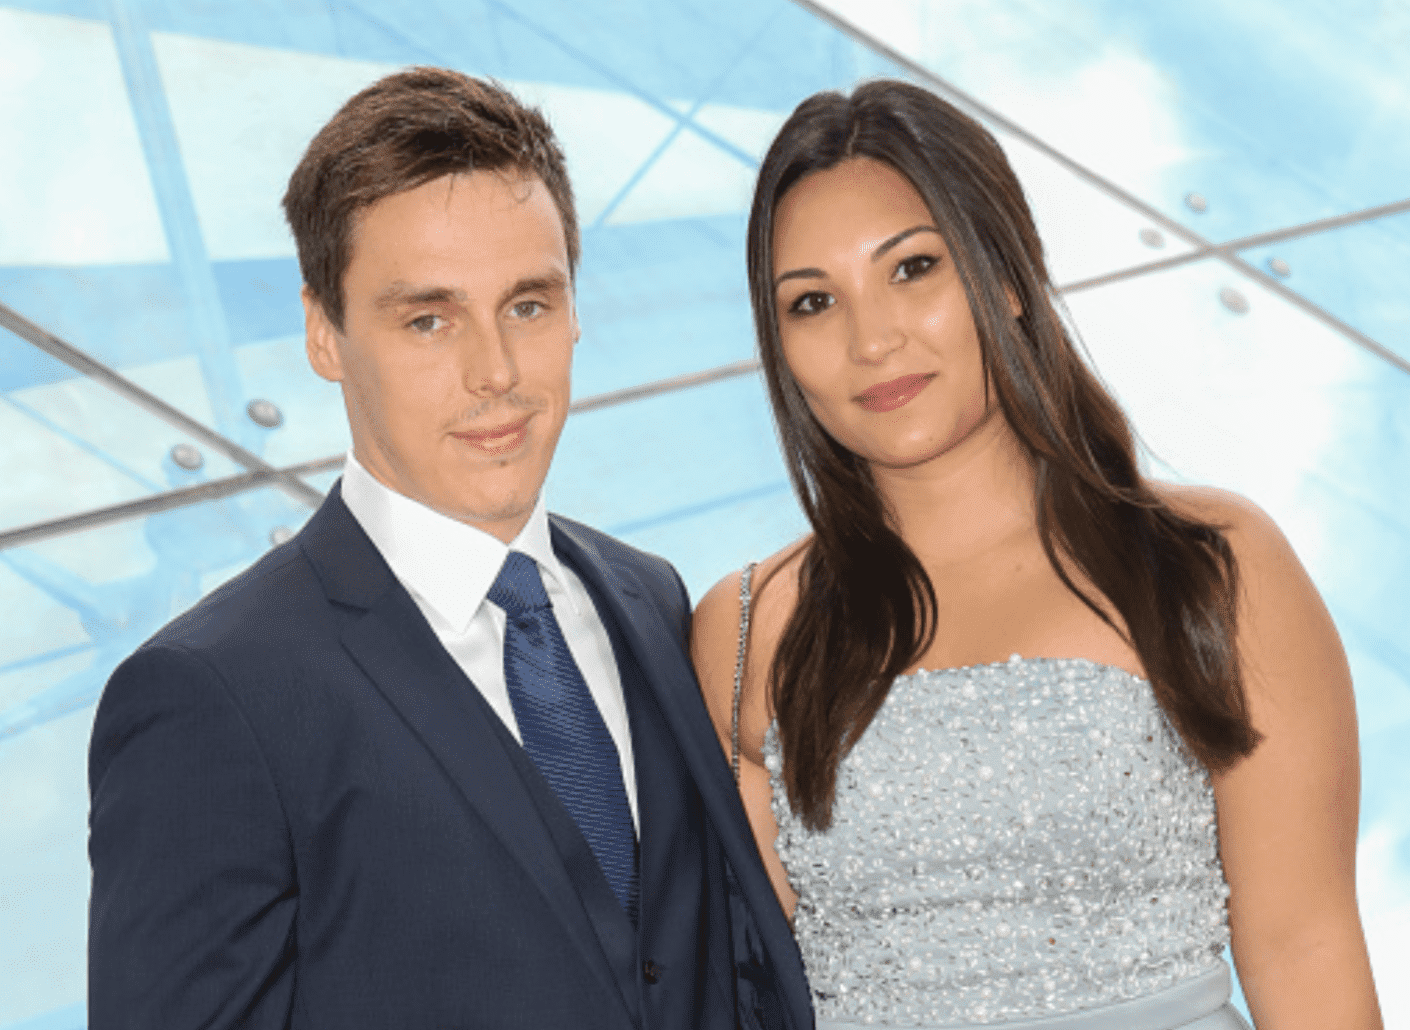 Louis Ducruet and Marie Chevallier attend the opening ceremony for the 58th Monte Carlo TV Festival, June 2018, Monaco. | Photo: Getty Images.